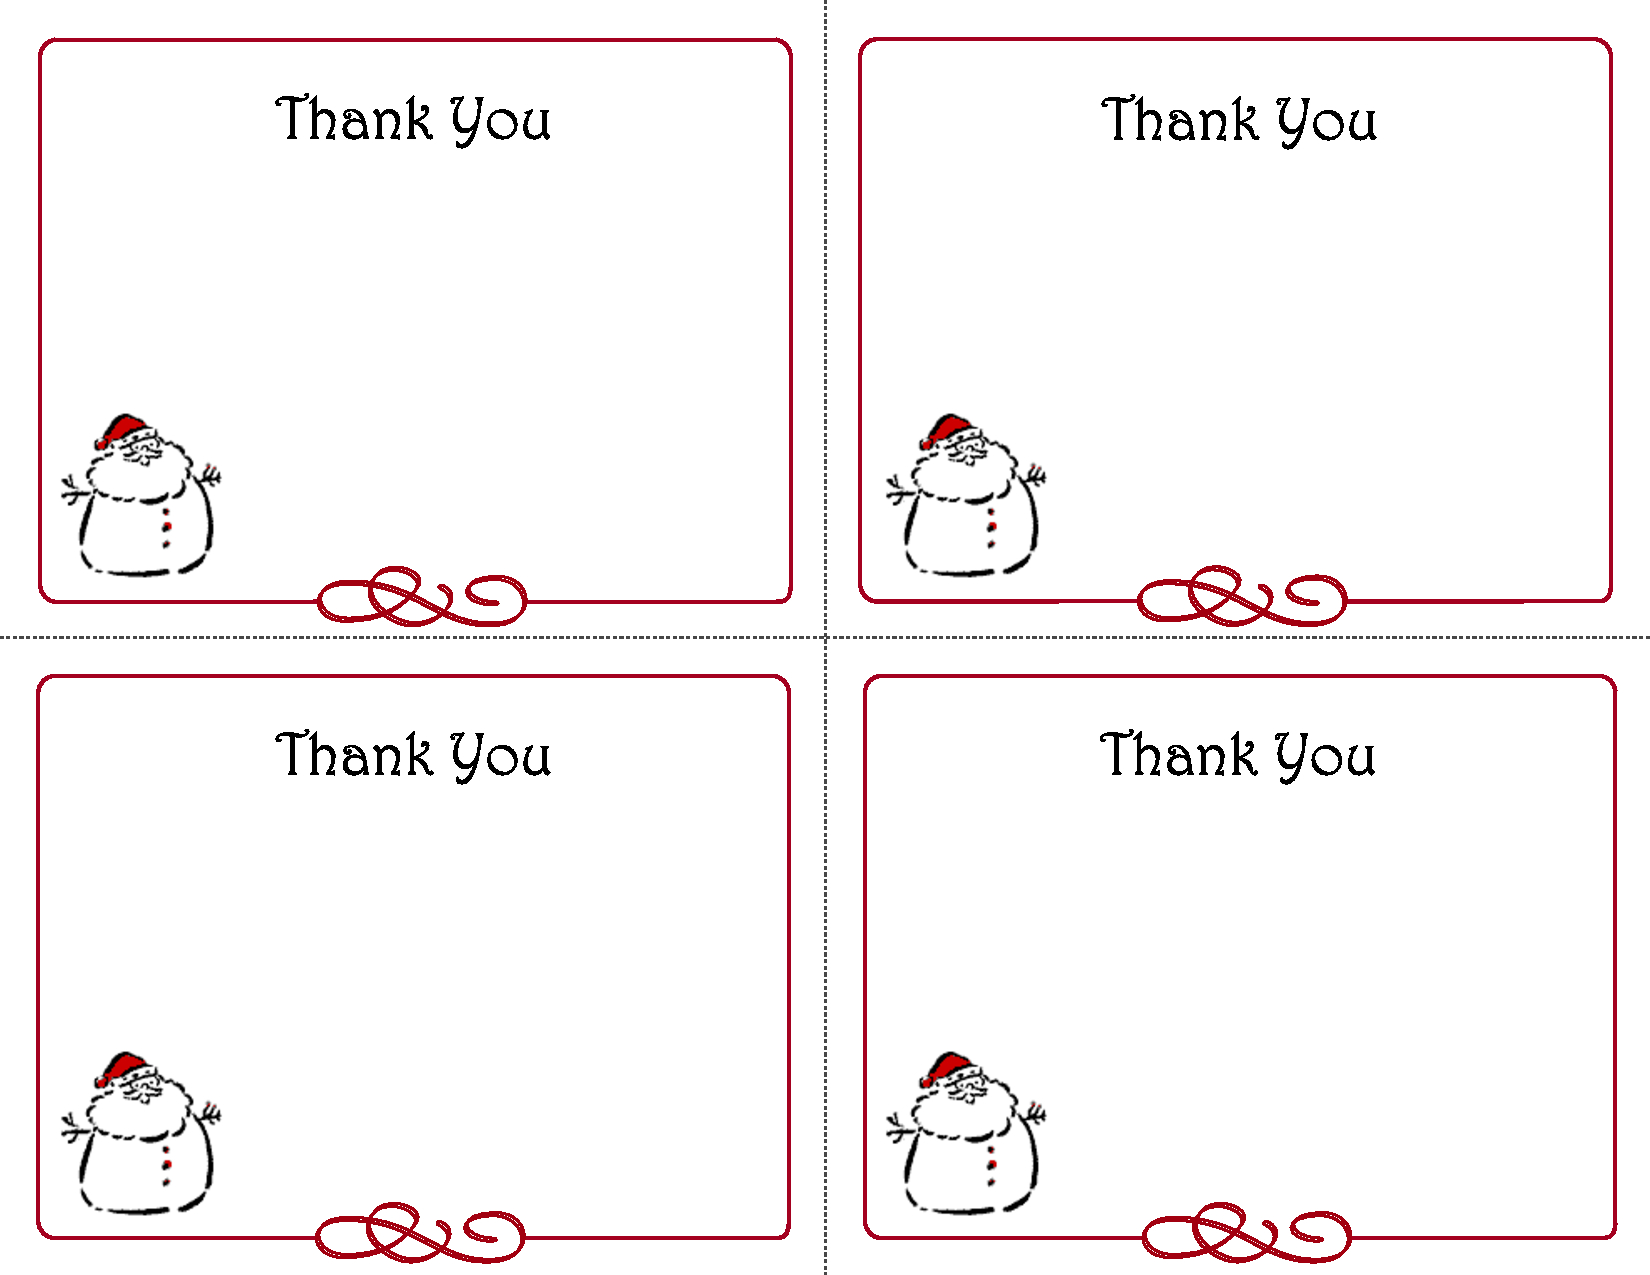 Free Thank You Cards Printable | Free Printable Holiday Gift Tags - Free Printable Note Cards Template